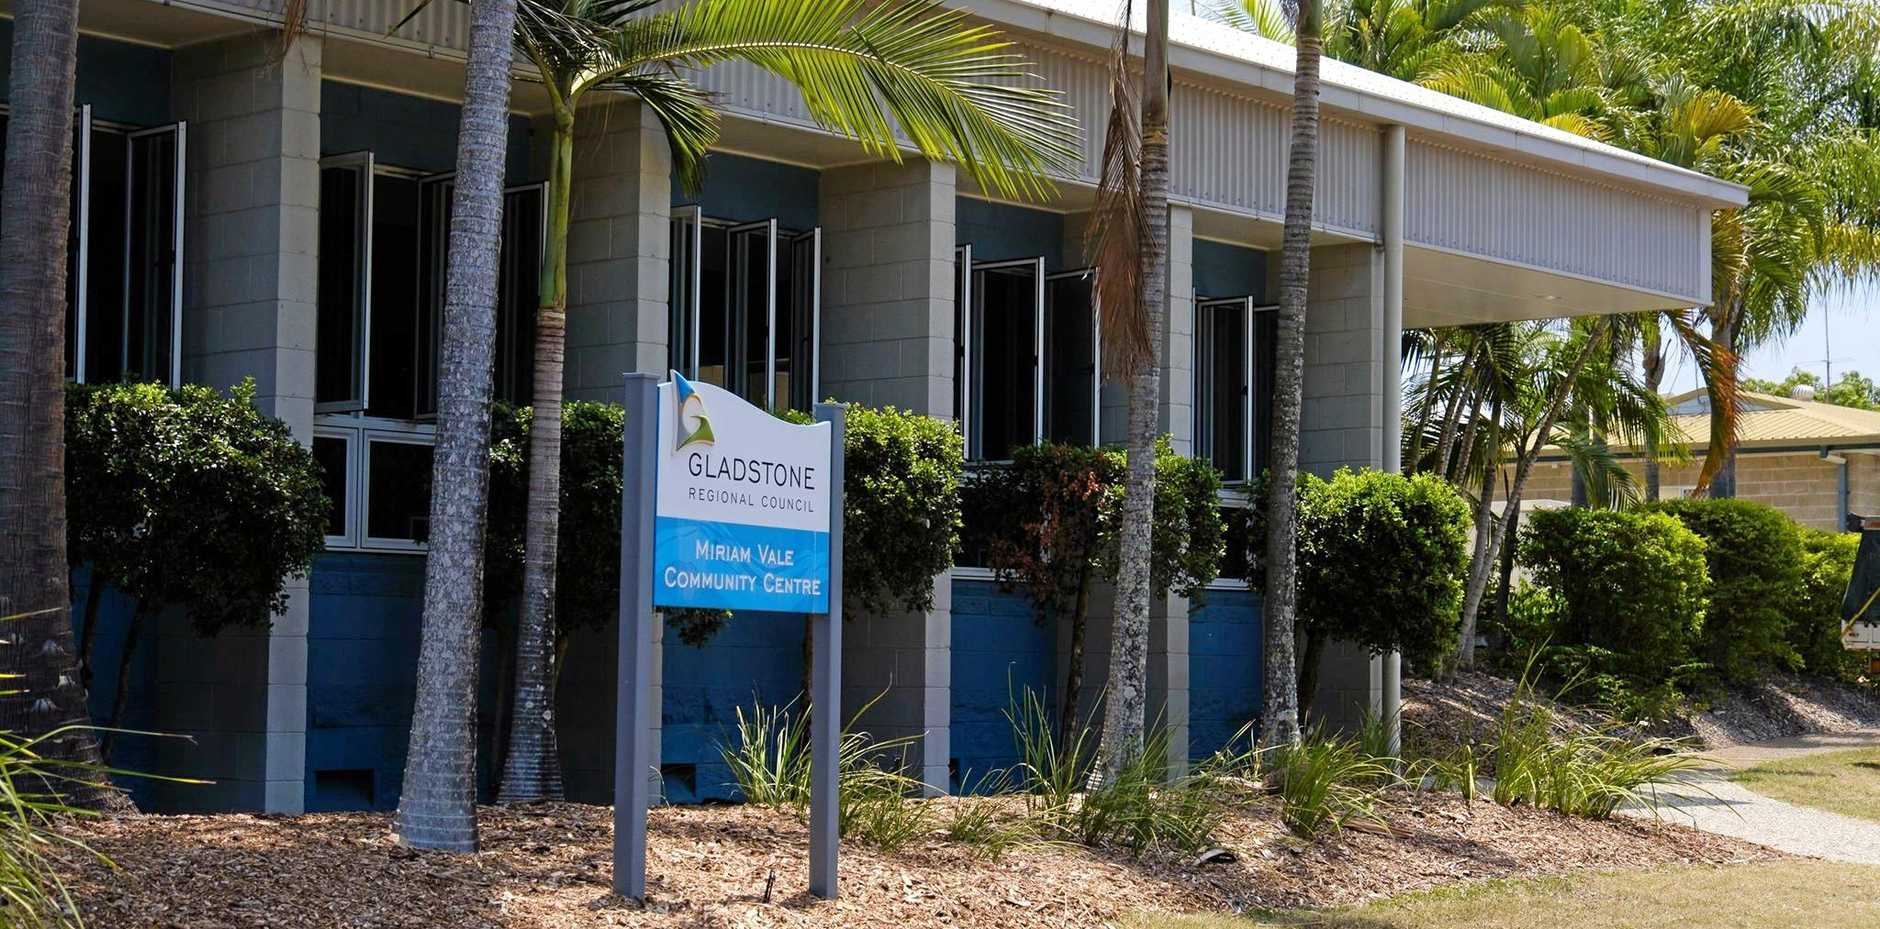 ON THE ROAD: Miriam Vale Community Centre will host today's Gladstone Regional Council meeting from 9am.